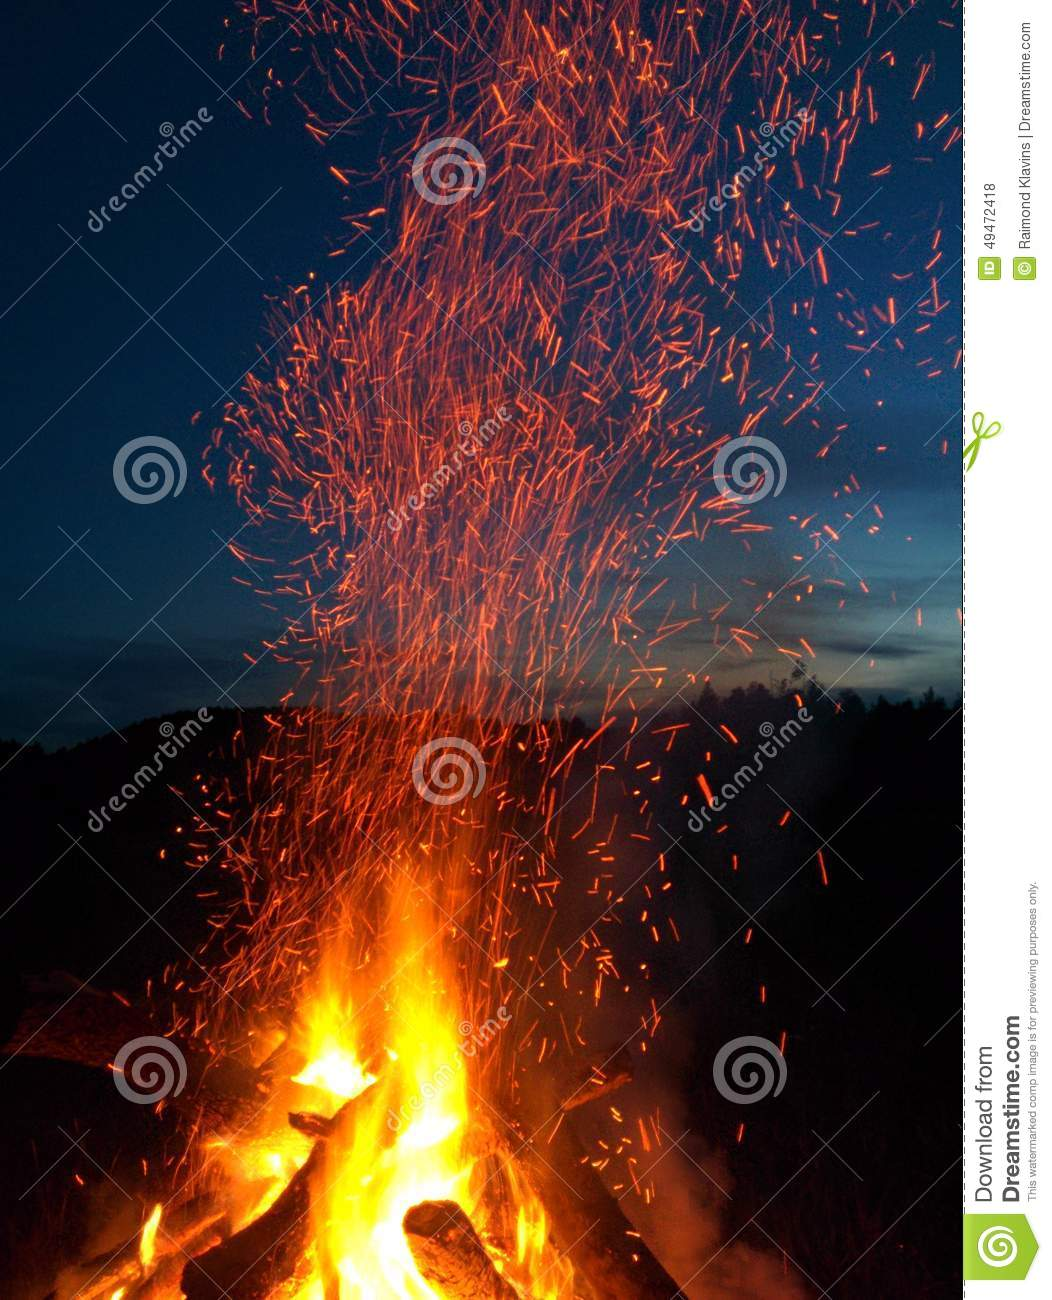 Bonfire with sparks at night summer time